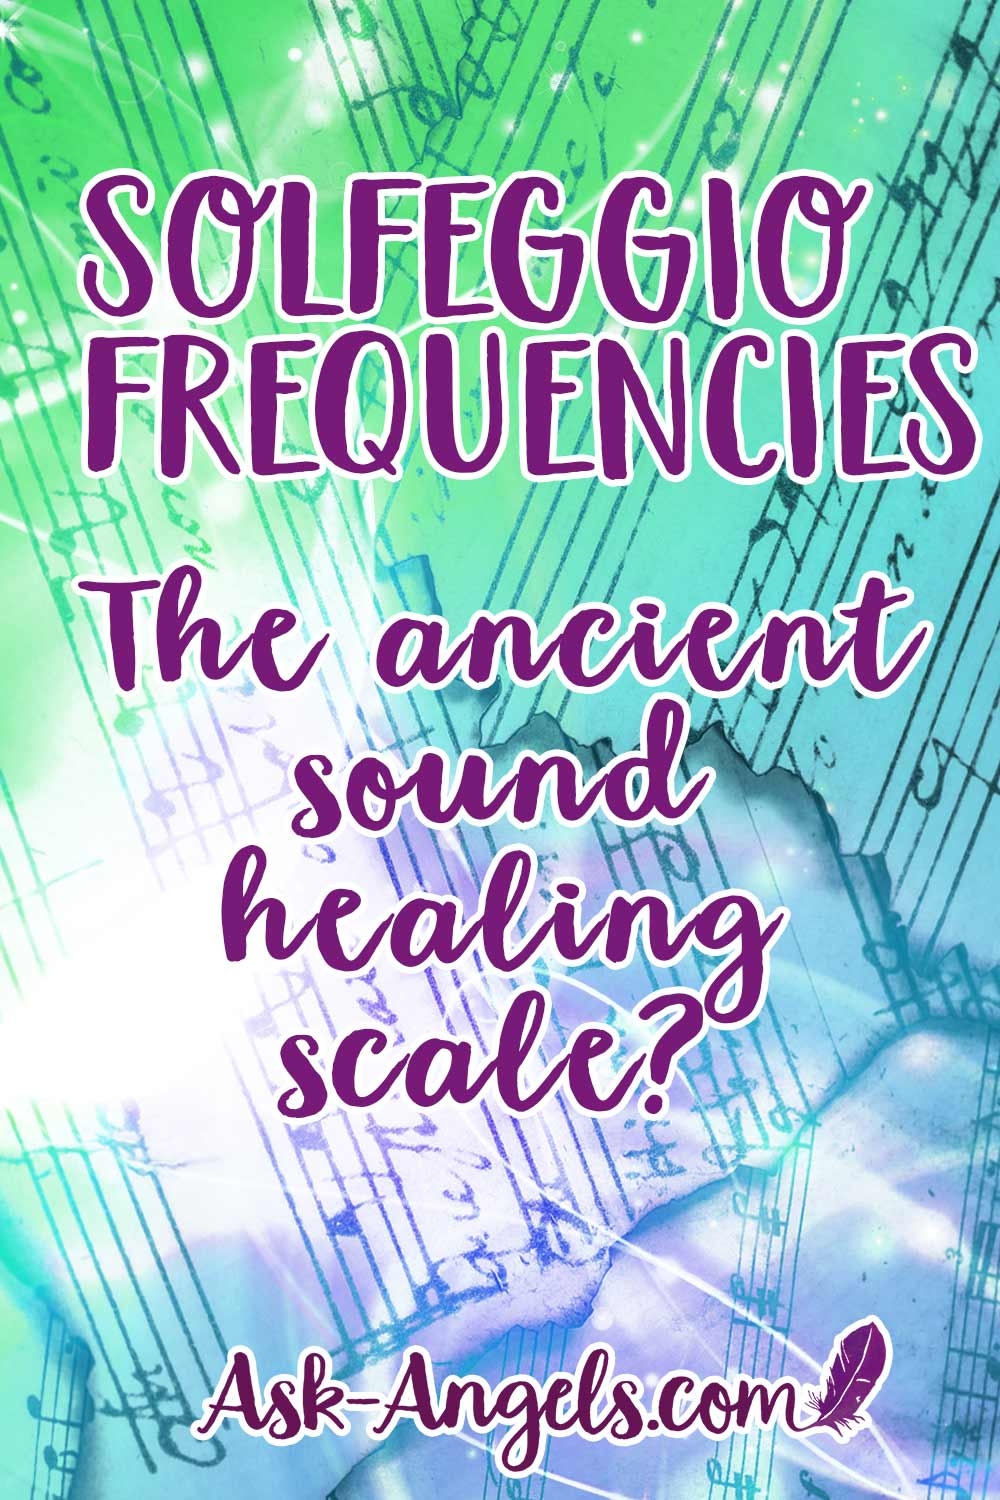 Solfeggio Frequencies -The ancient sound healing scale?